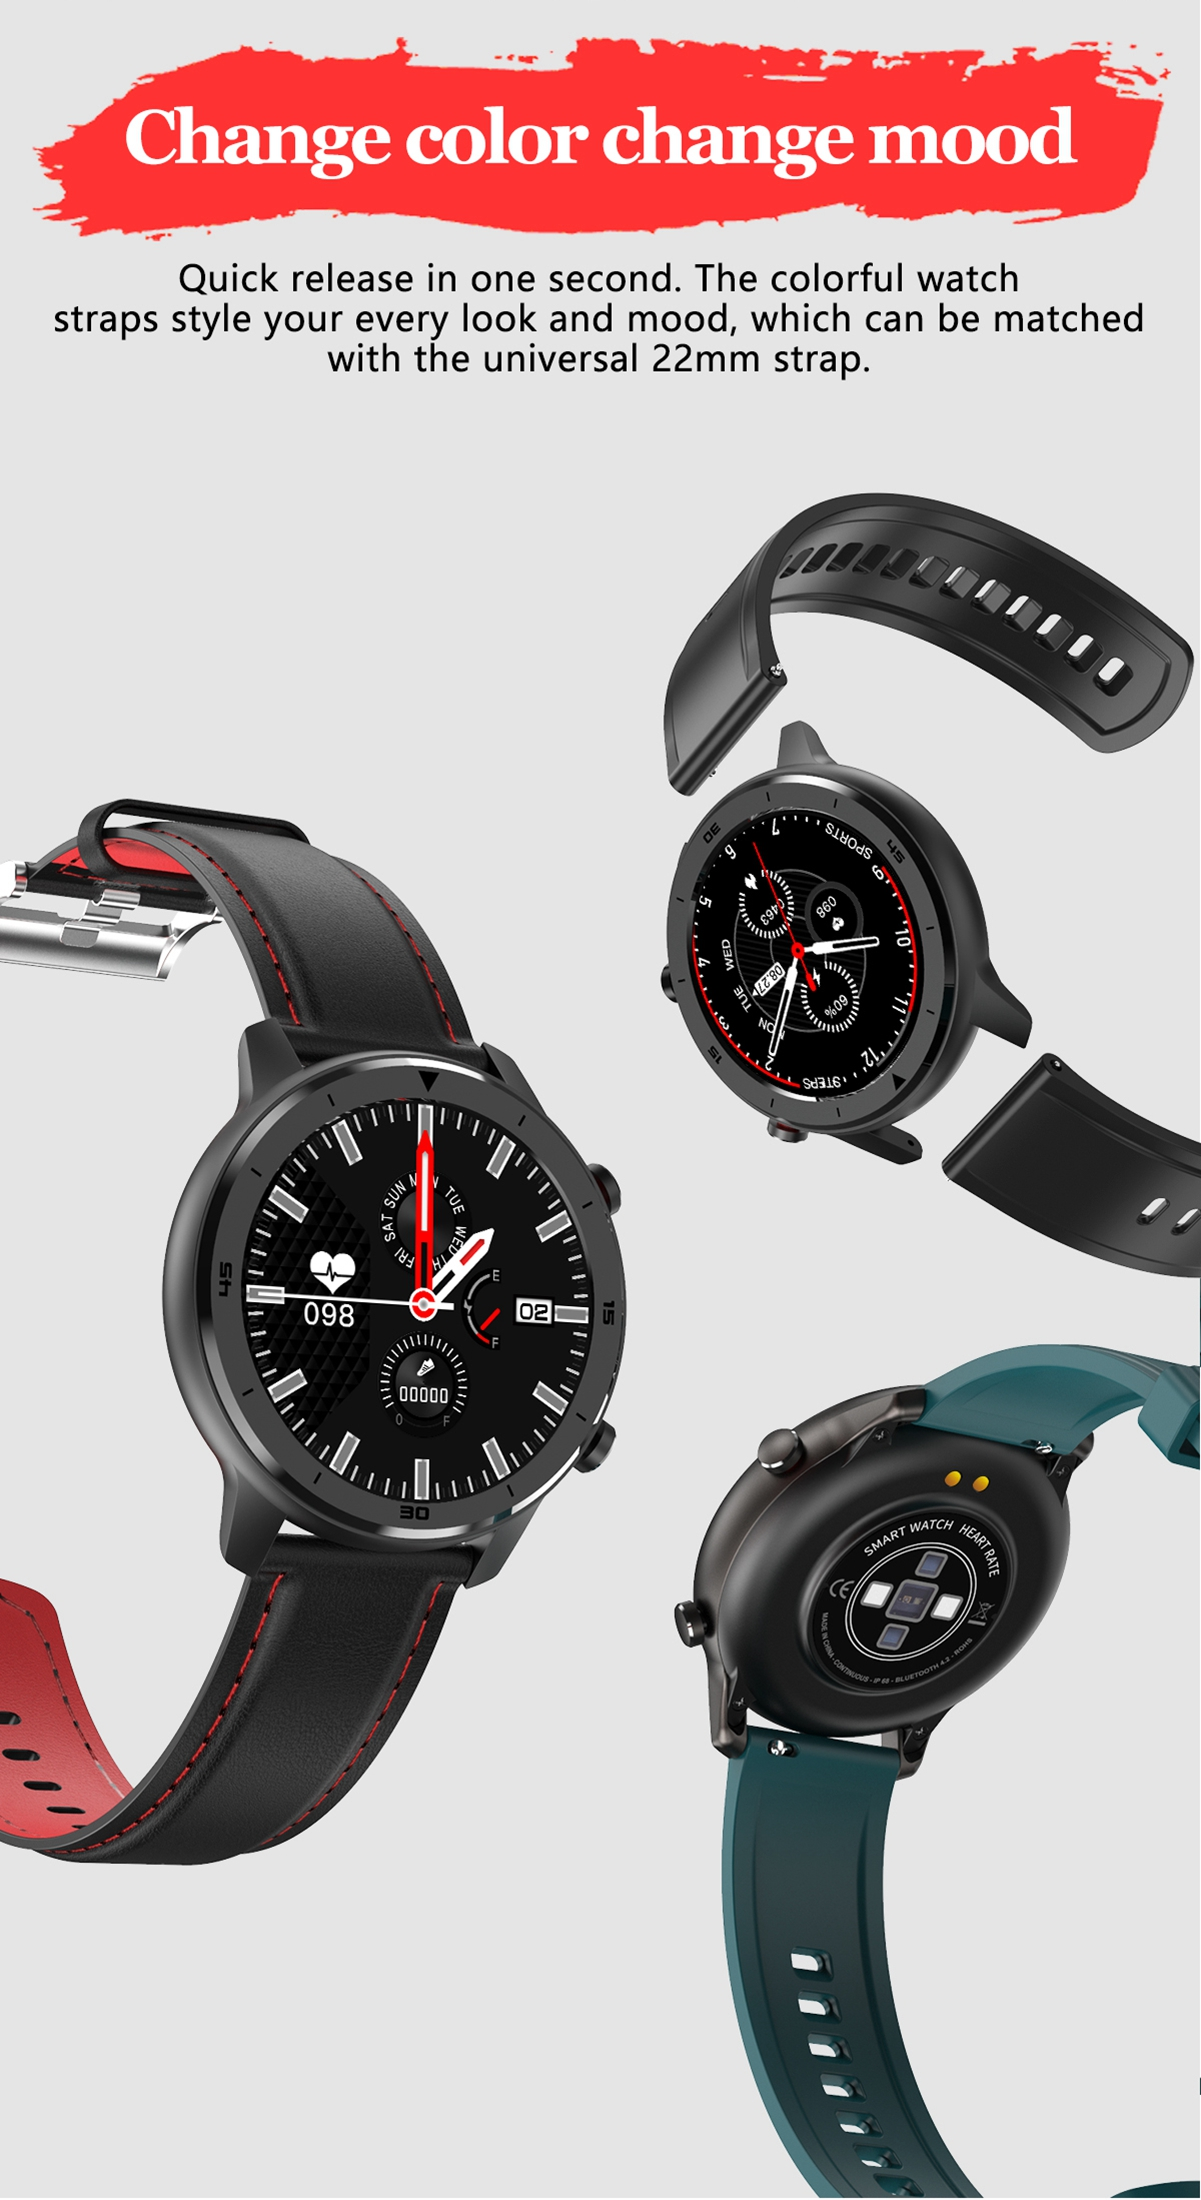 Smartwatches for men change color